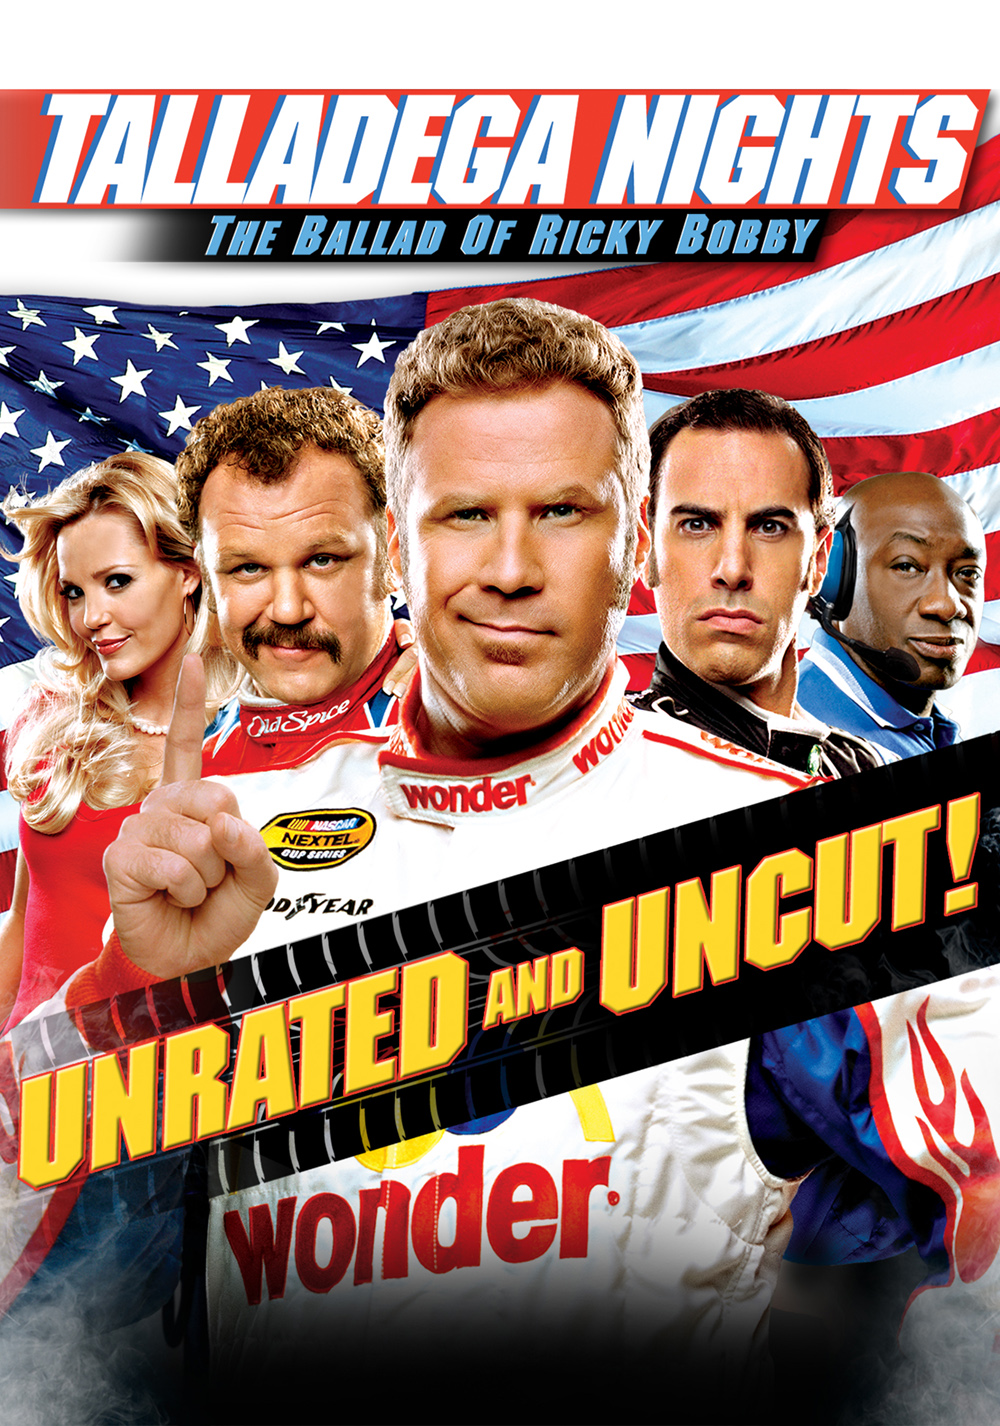 the comic frame in the daily show video about unesco and talladega nights the ballad of ricky bobby